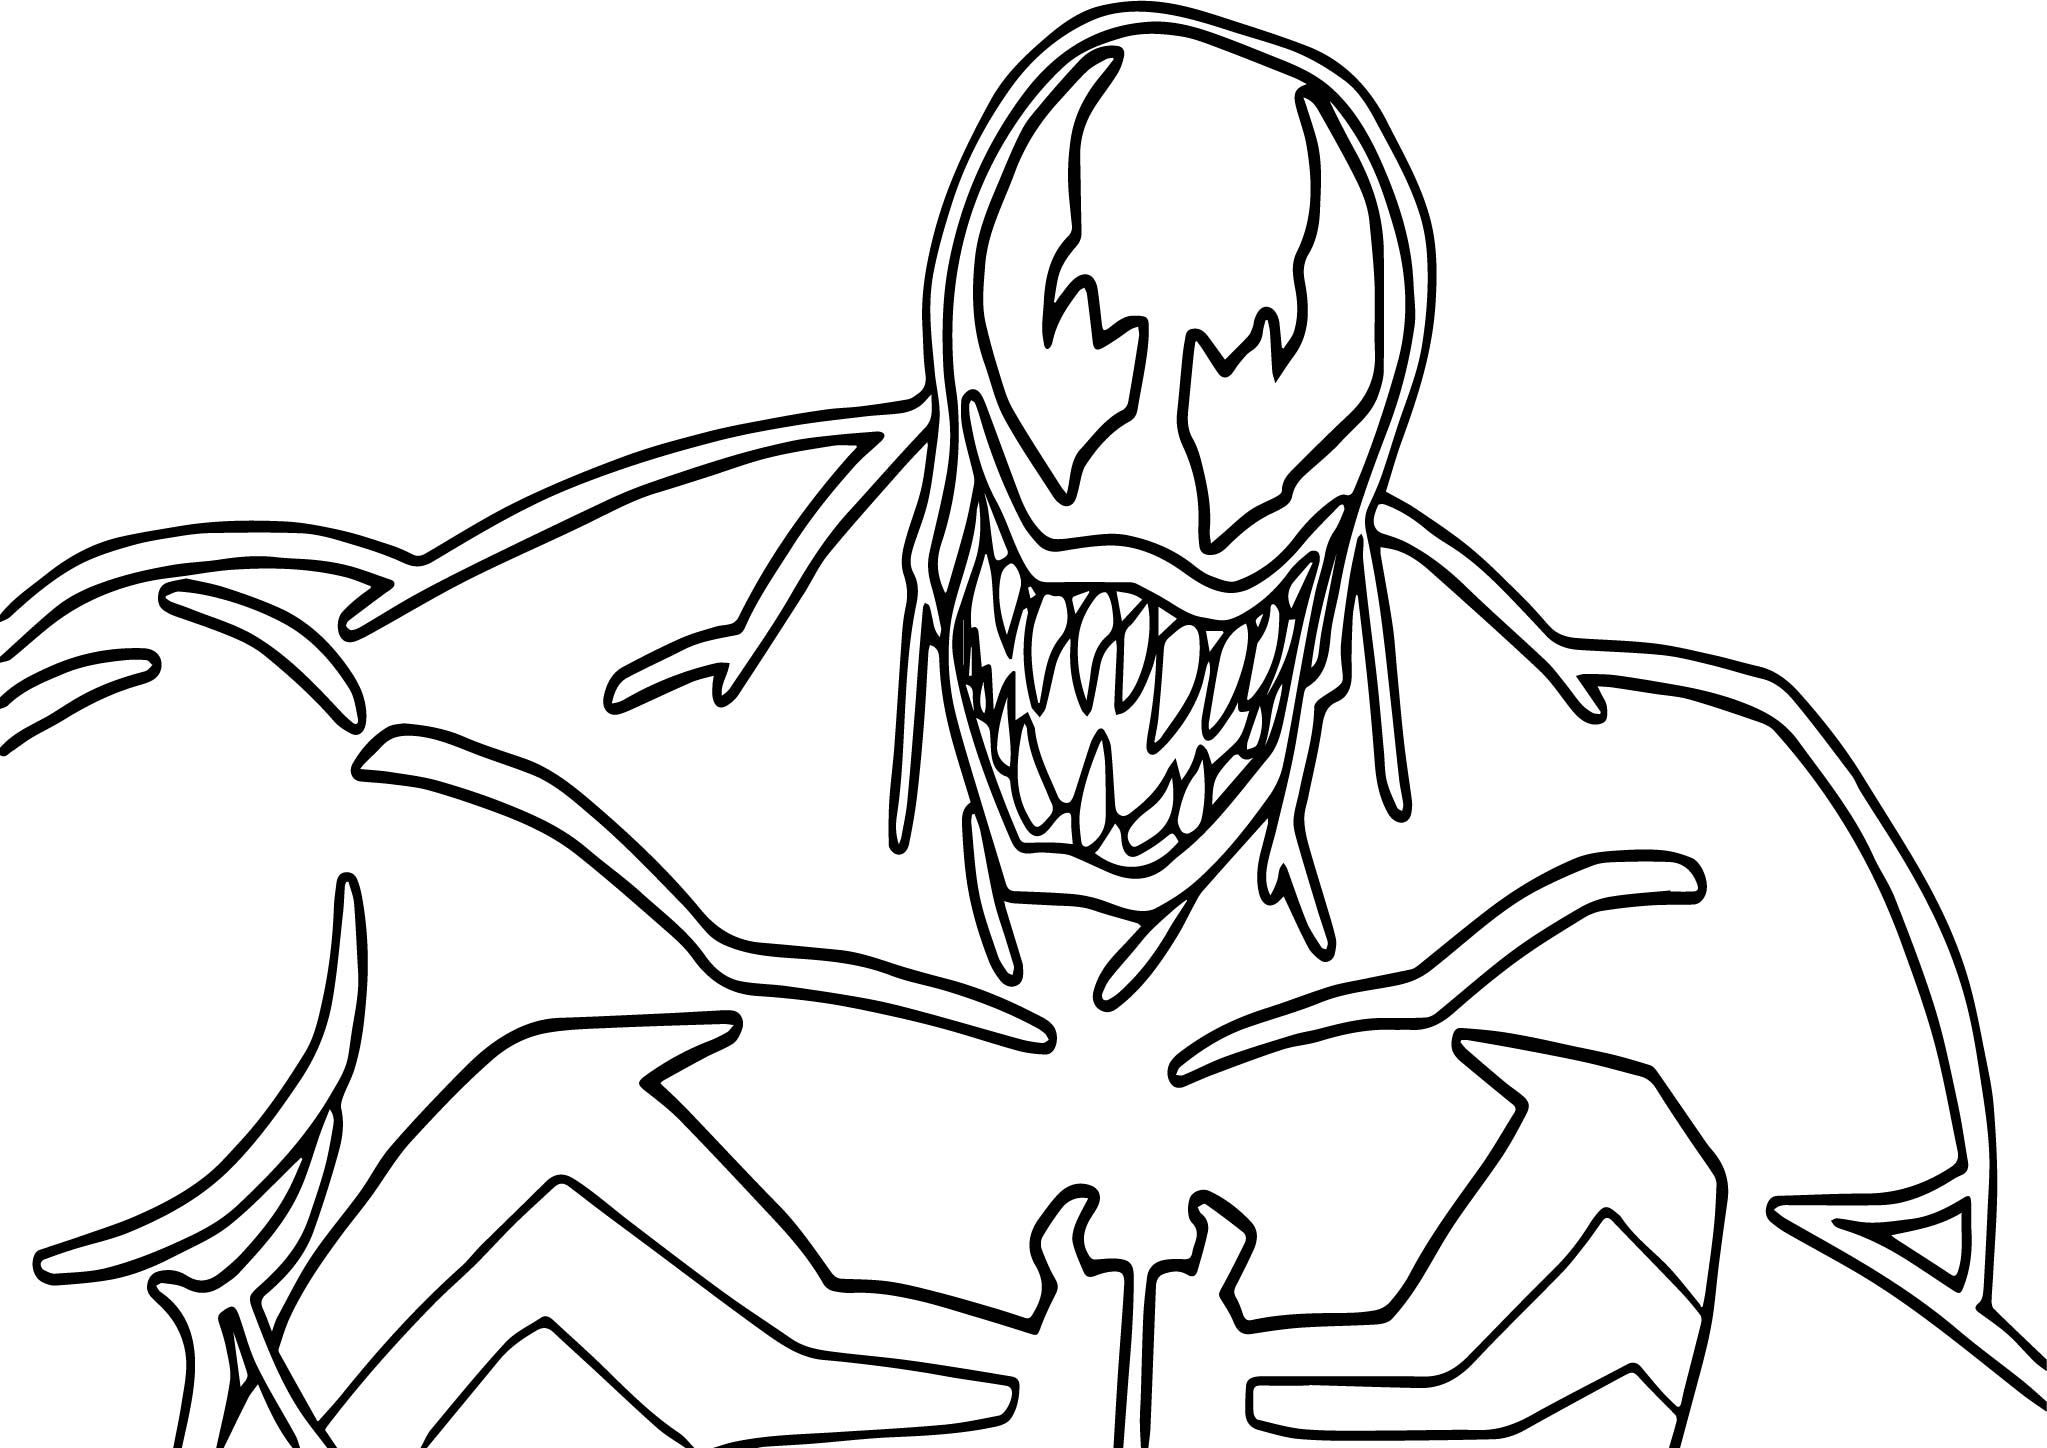 Coloring pages venom - Big Venom Coloring Page